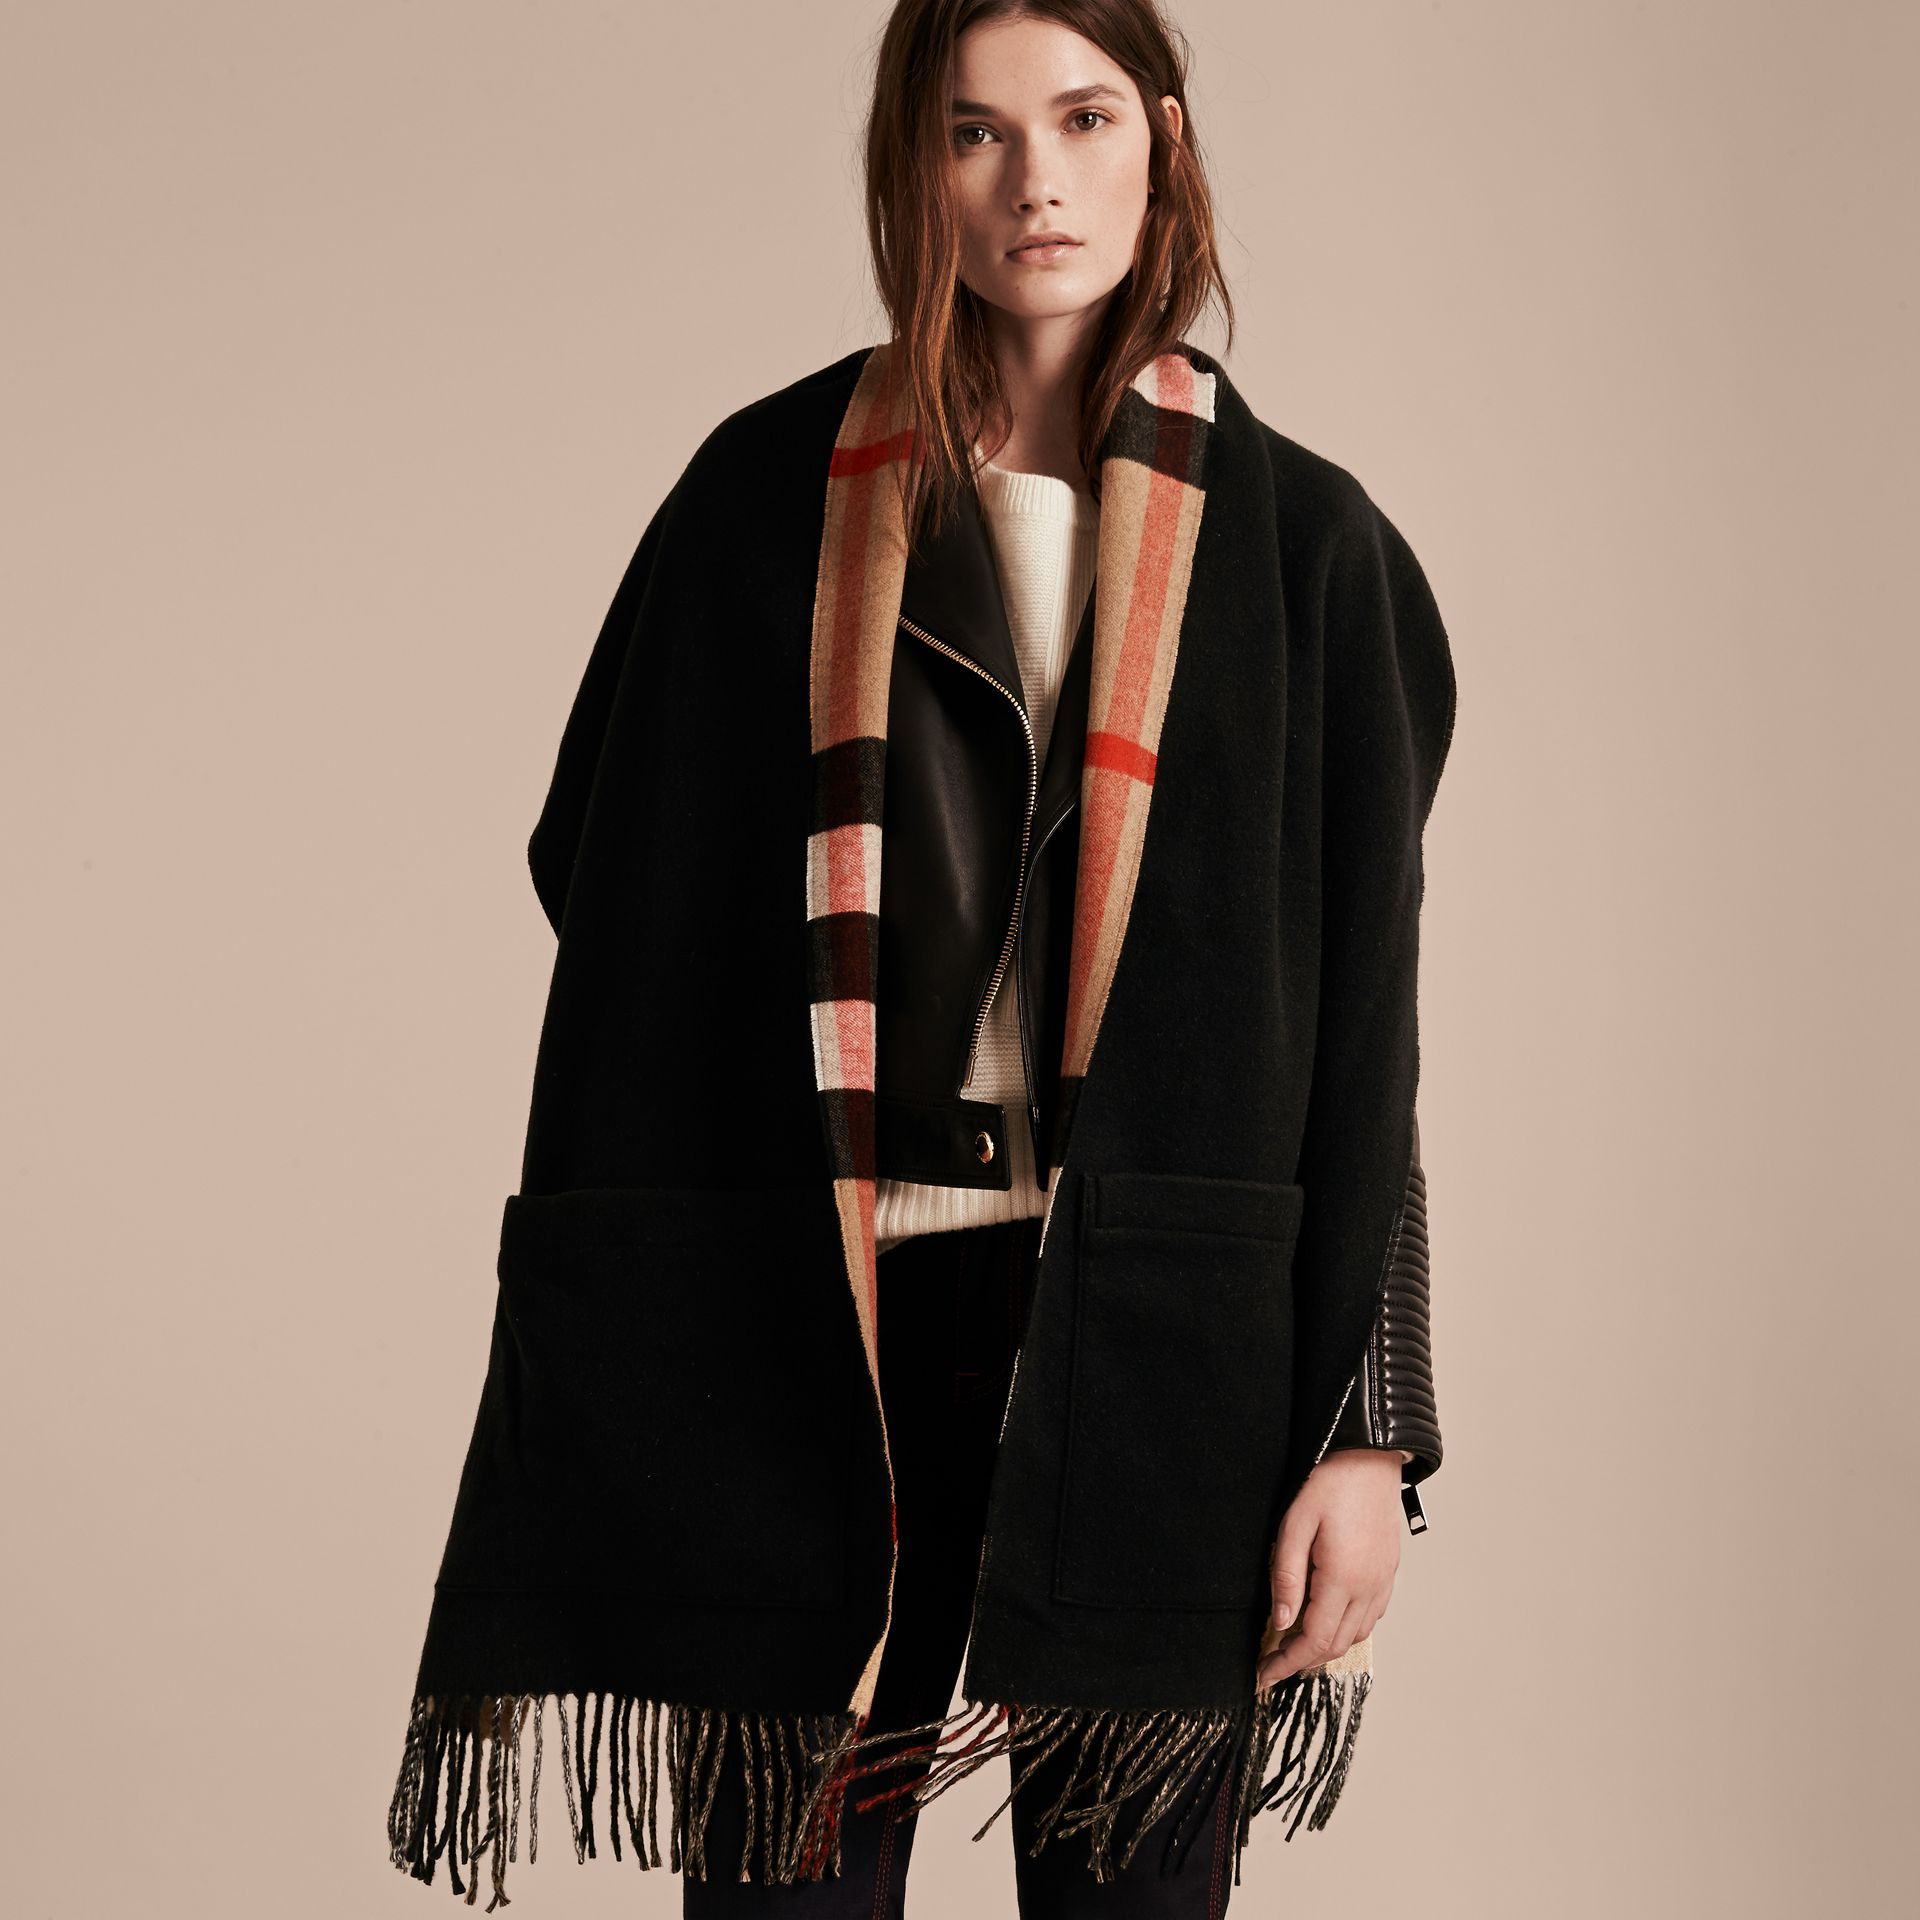 Check-lined Wool Cashmere Wrap in Black - Women | Burberry Hong Kong - gallery image 1